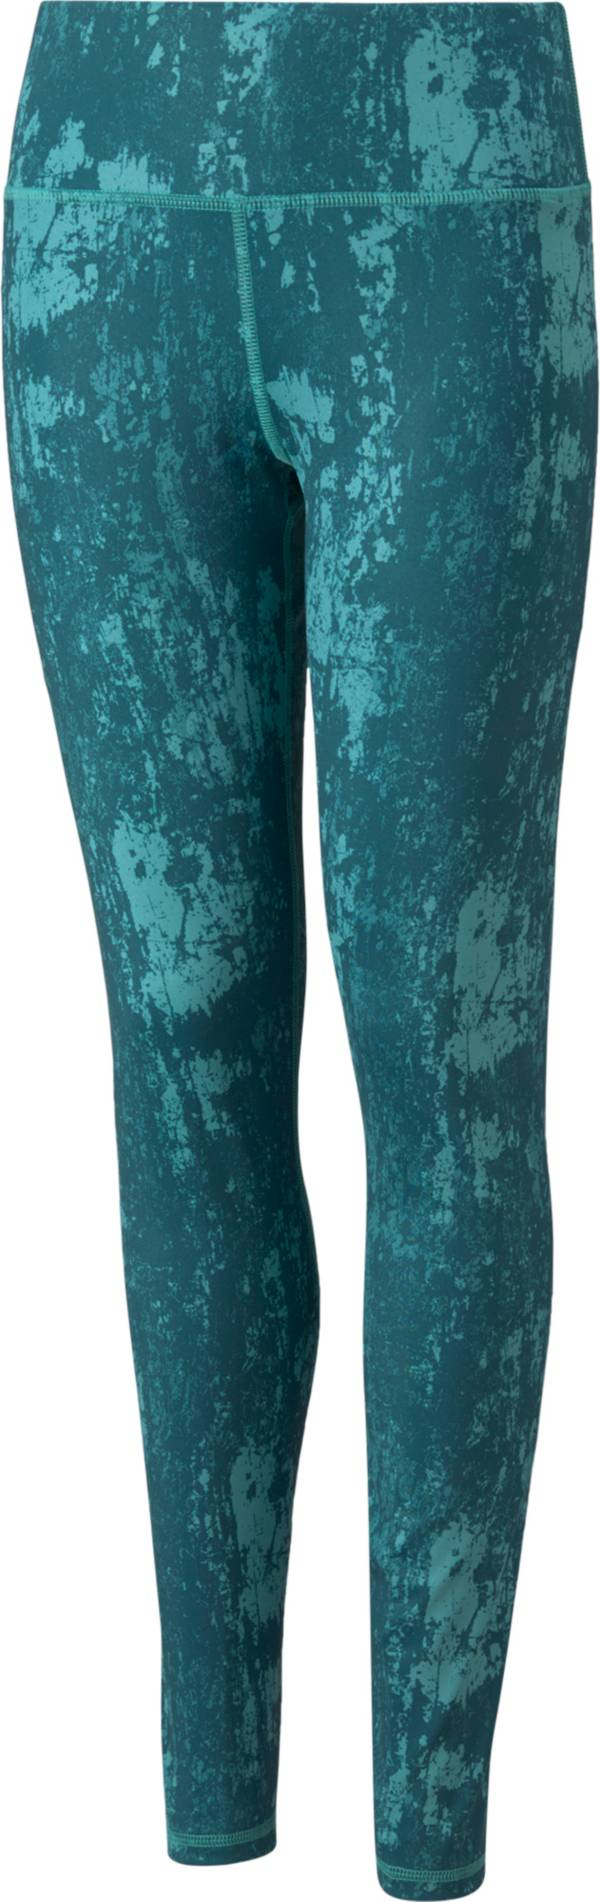 Puma Women's Printed Golf Tights product image